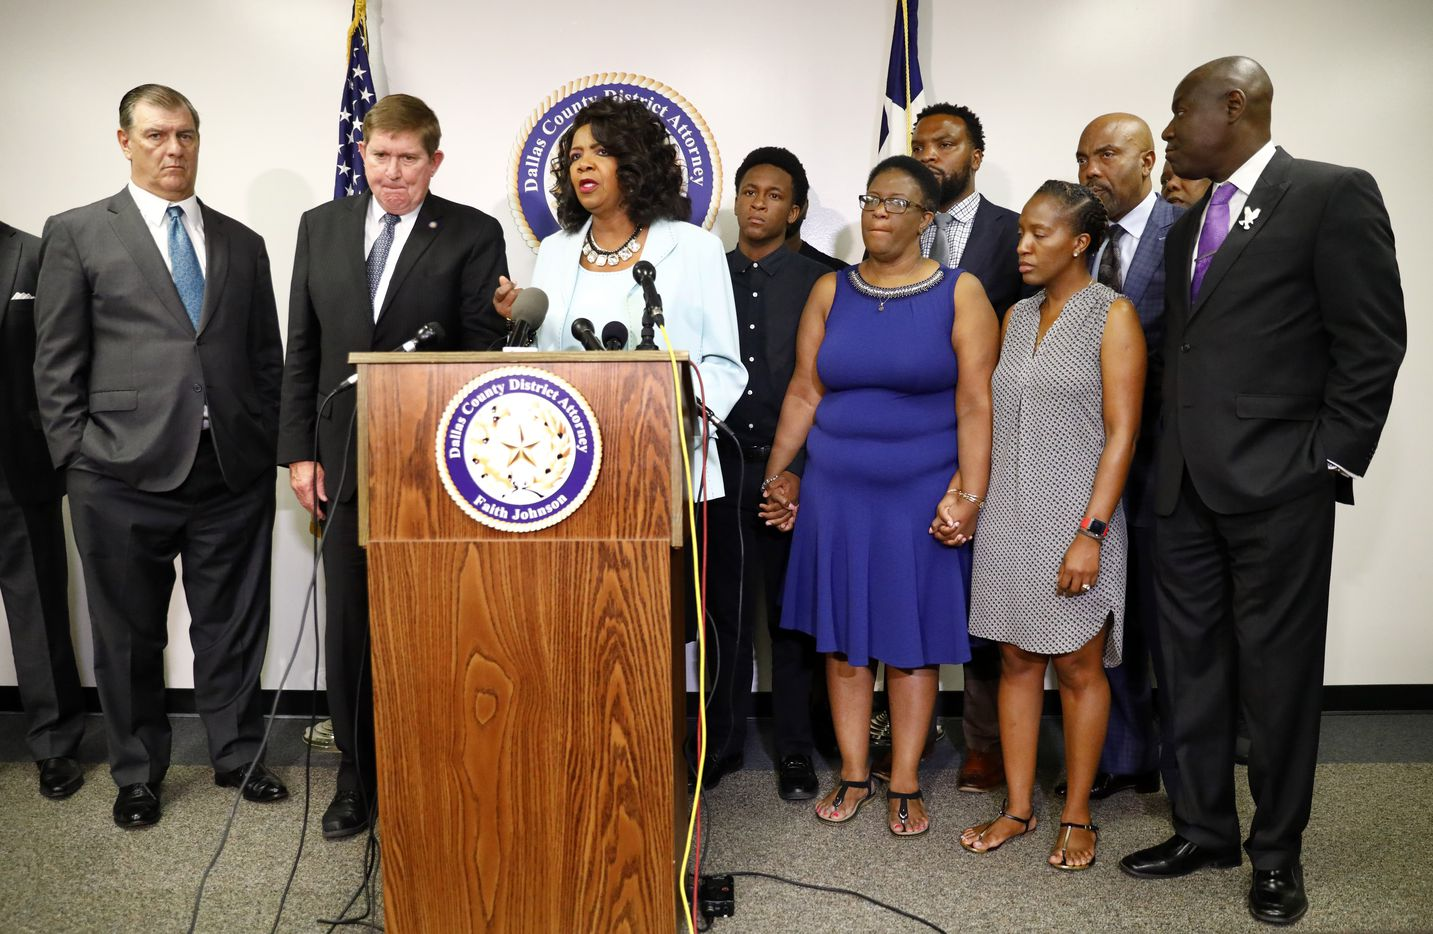 Flanked by family members of Botham Jean and their attorneys (right), Dallas County District Attorney Faith Johnson speaks during a press conference at the Frank Crowley Courts Building in reference to the shooting of Botham Jean by Dallas police officer Amber Guyger, Monday, September 10, 2018. Dallas Mayor Mike Rawlings  (left) spoke as well.